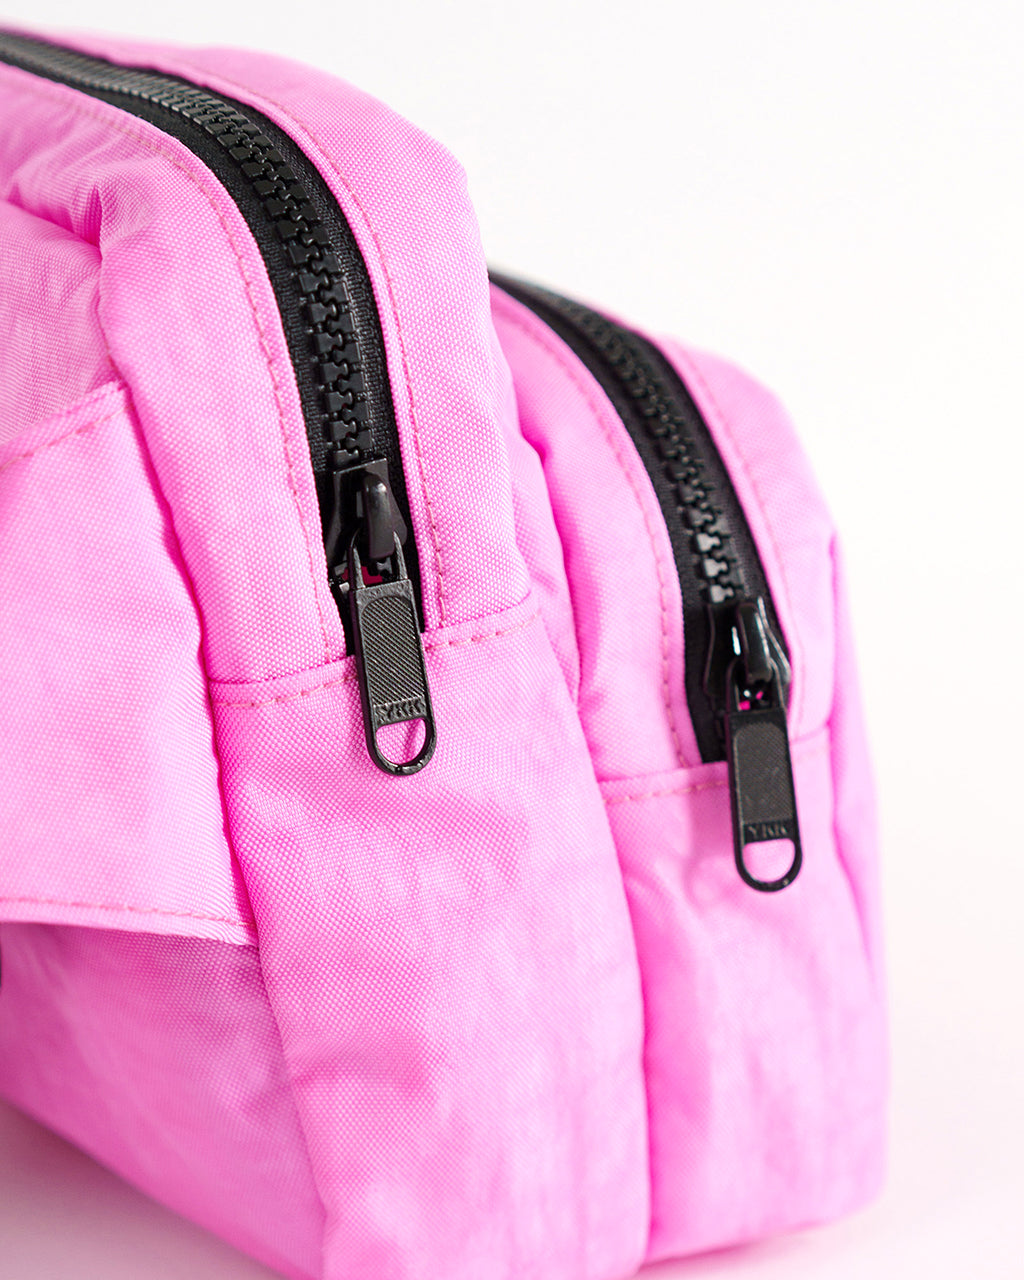 bright pink nylon fanny pack with double zip pockets